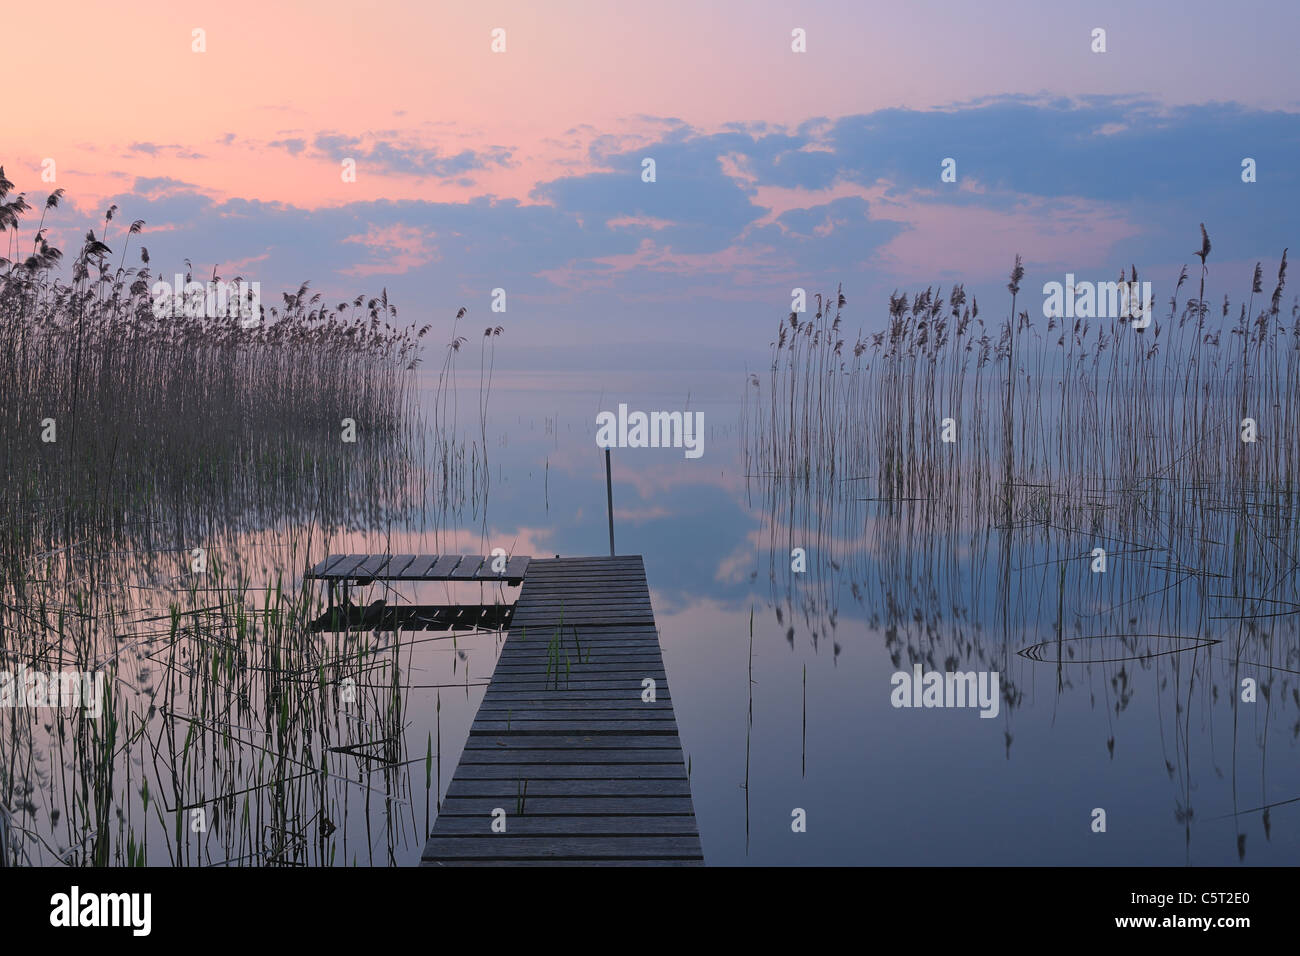 Germany, Mecklenburg-Vorpommern, Mecklenburger Seenplatte, Plau am See, View of jetty at sunrise with reeds at lake - Stock Image